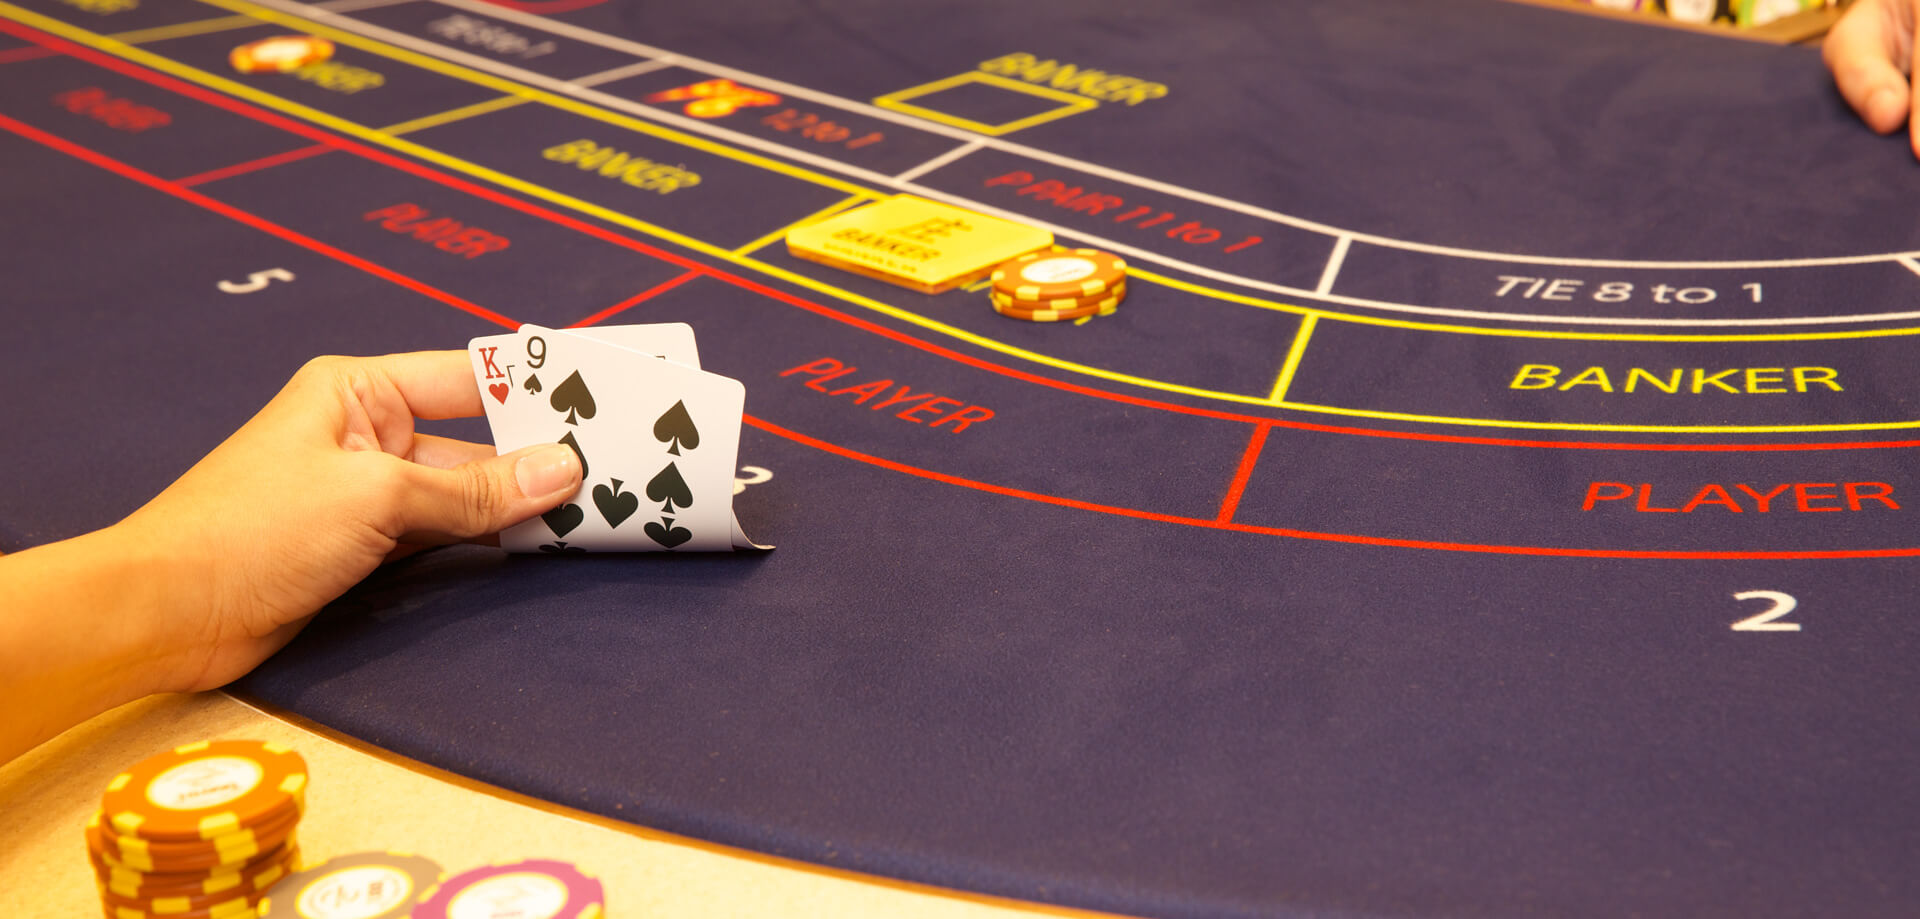 Some Facts You Should Know Before Playing At On Online Casino